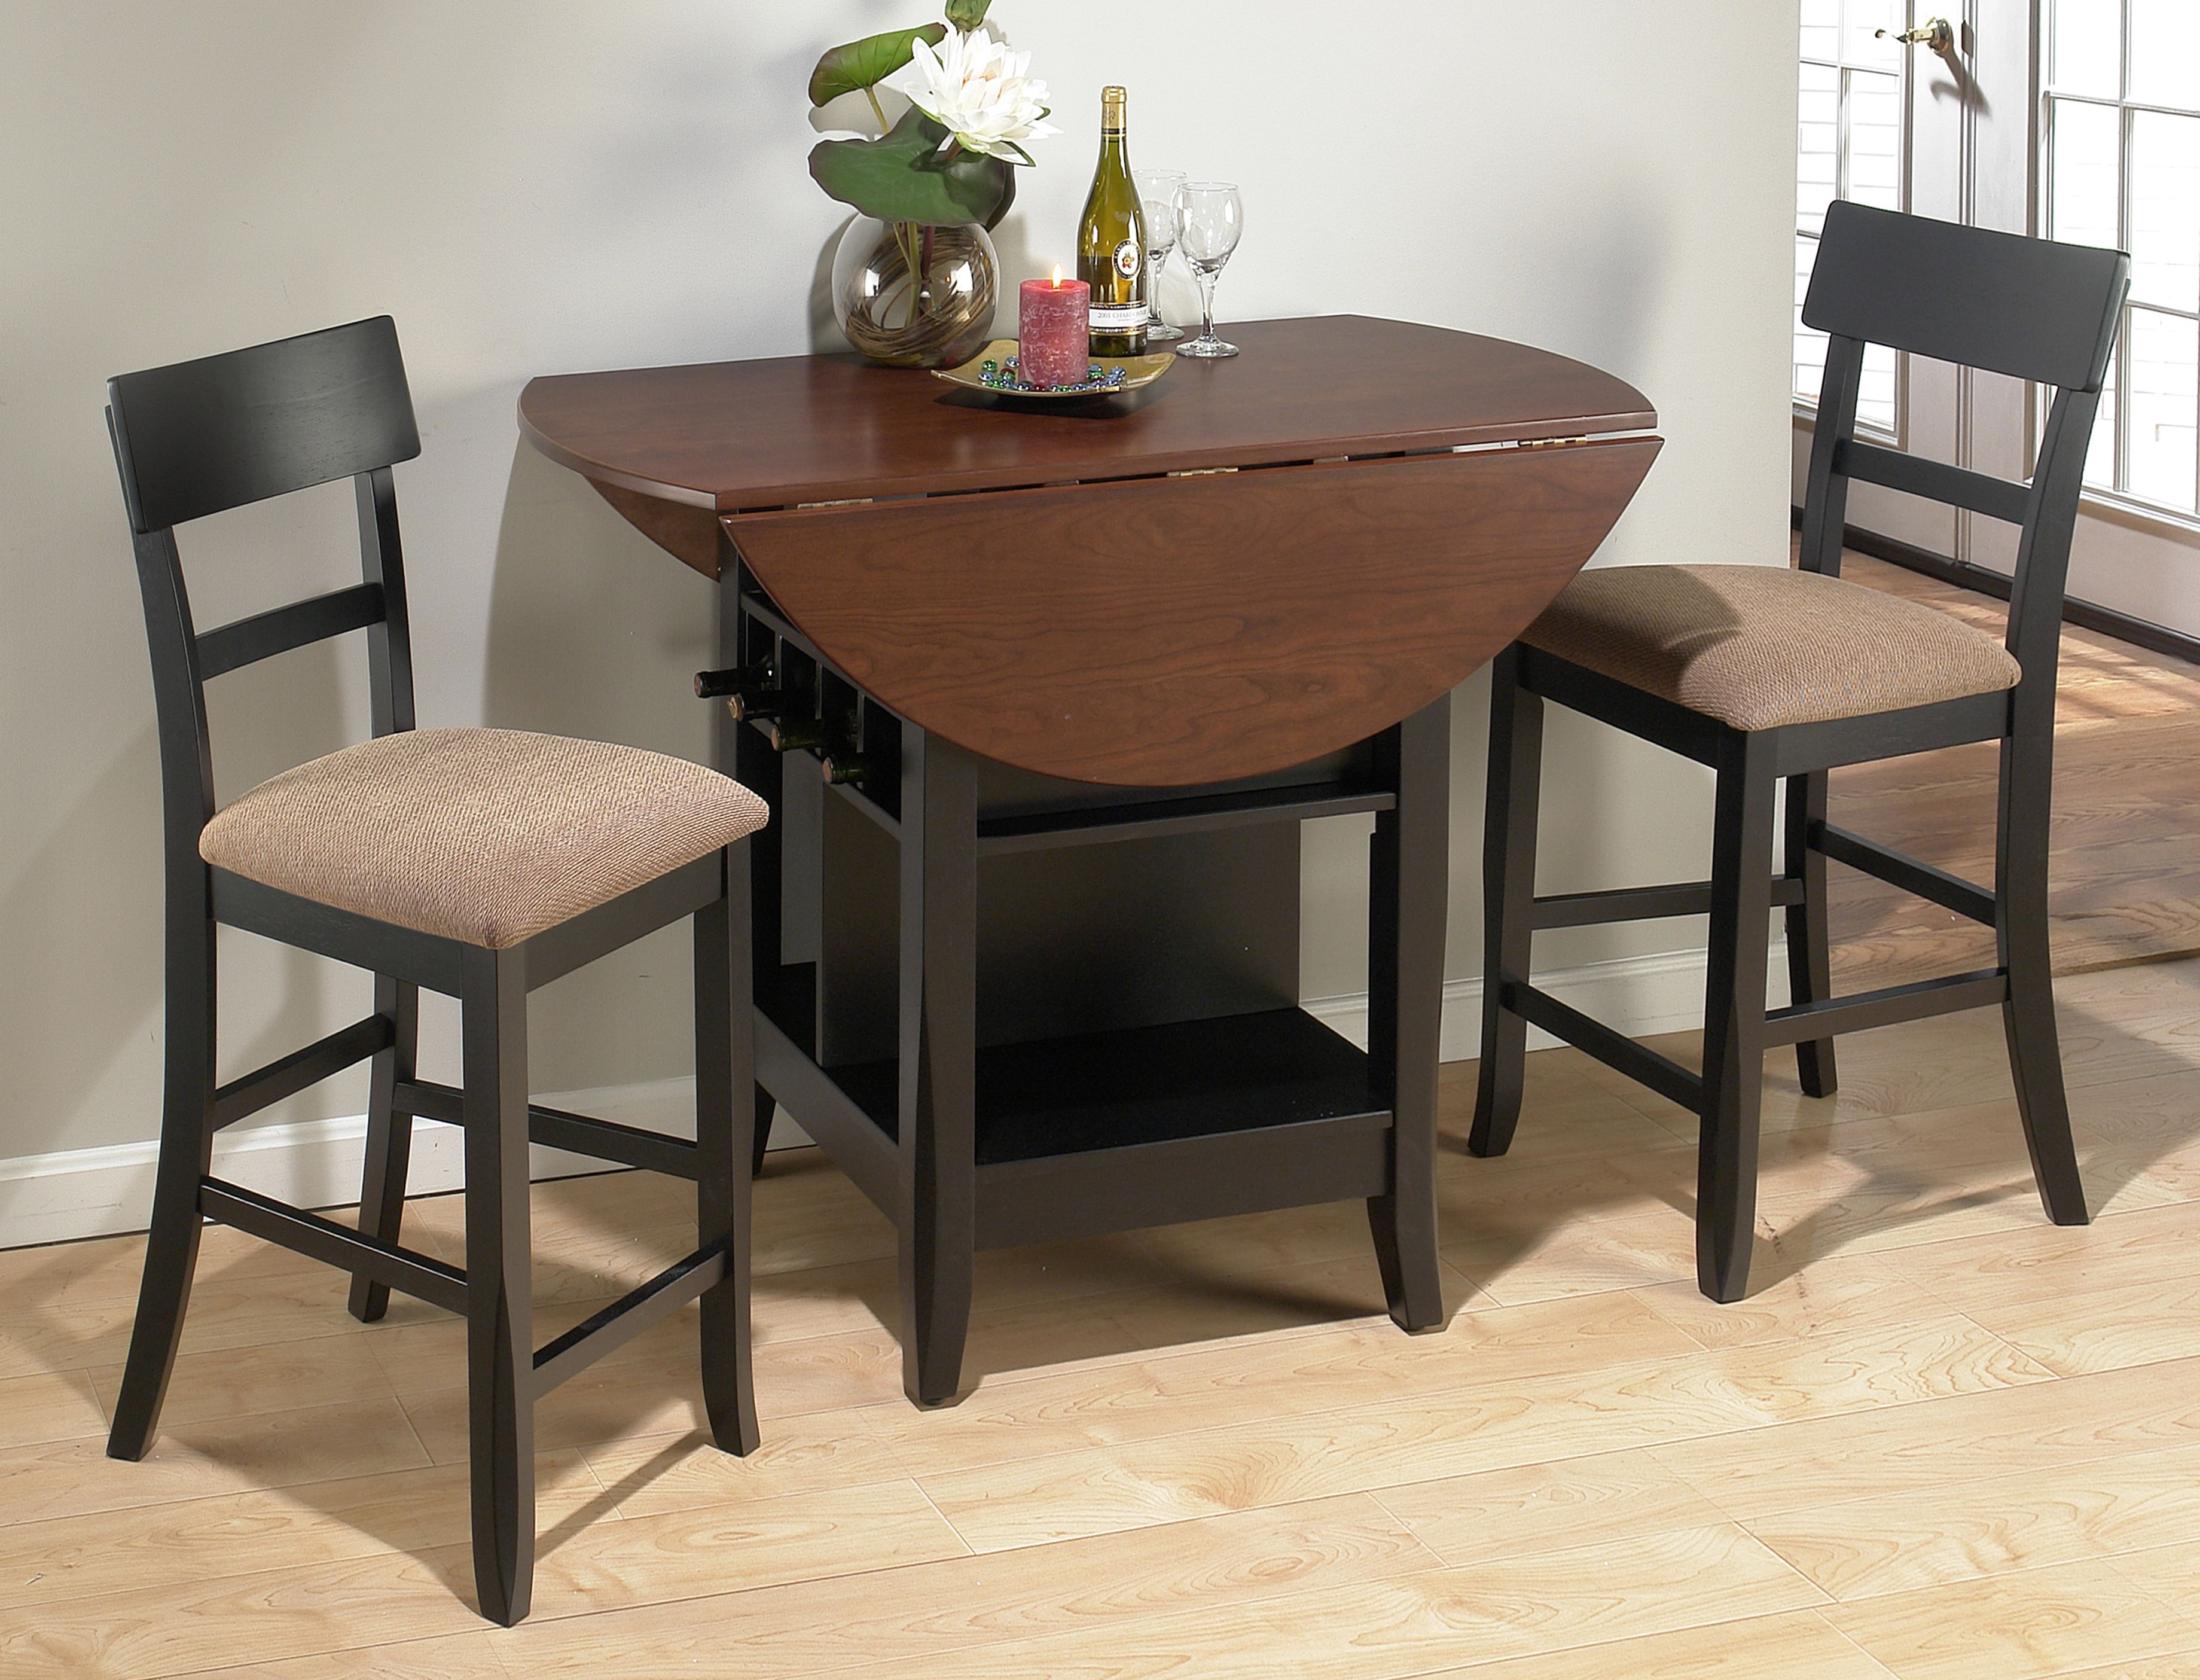 Bar height square kitchen table  Fresco of Counter Height Dinette Sets  Perfect Dining Room Ideas